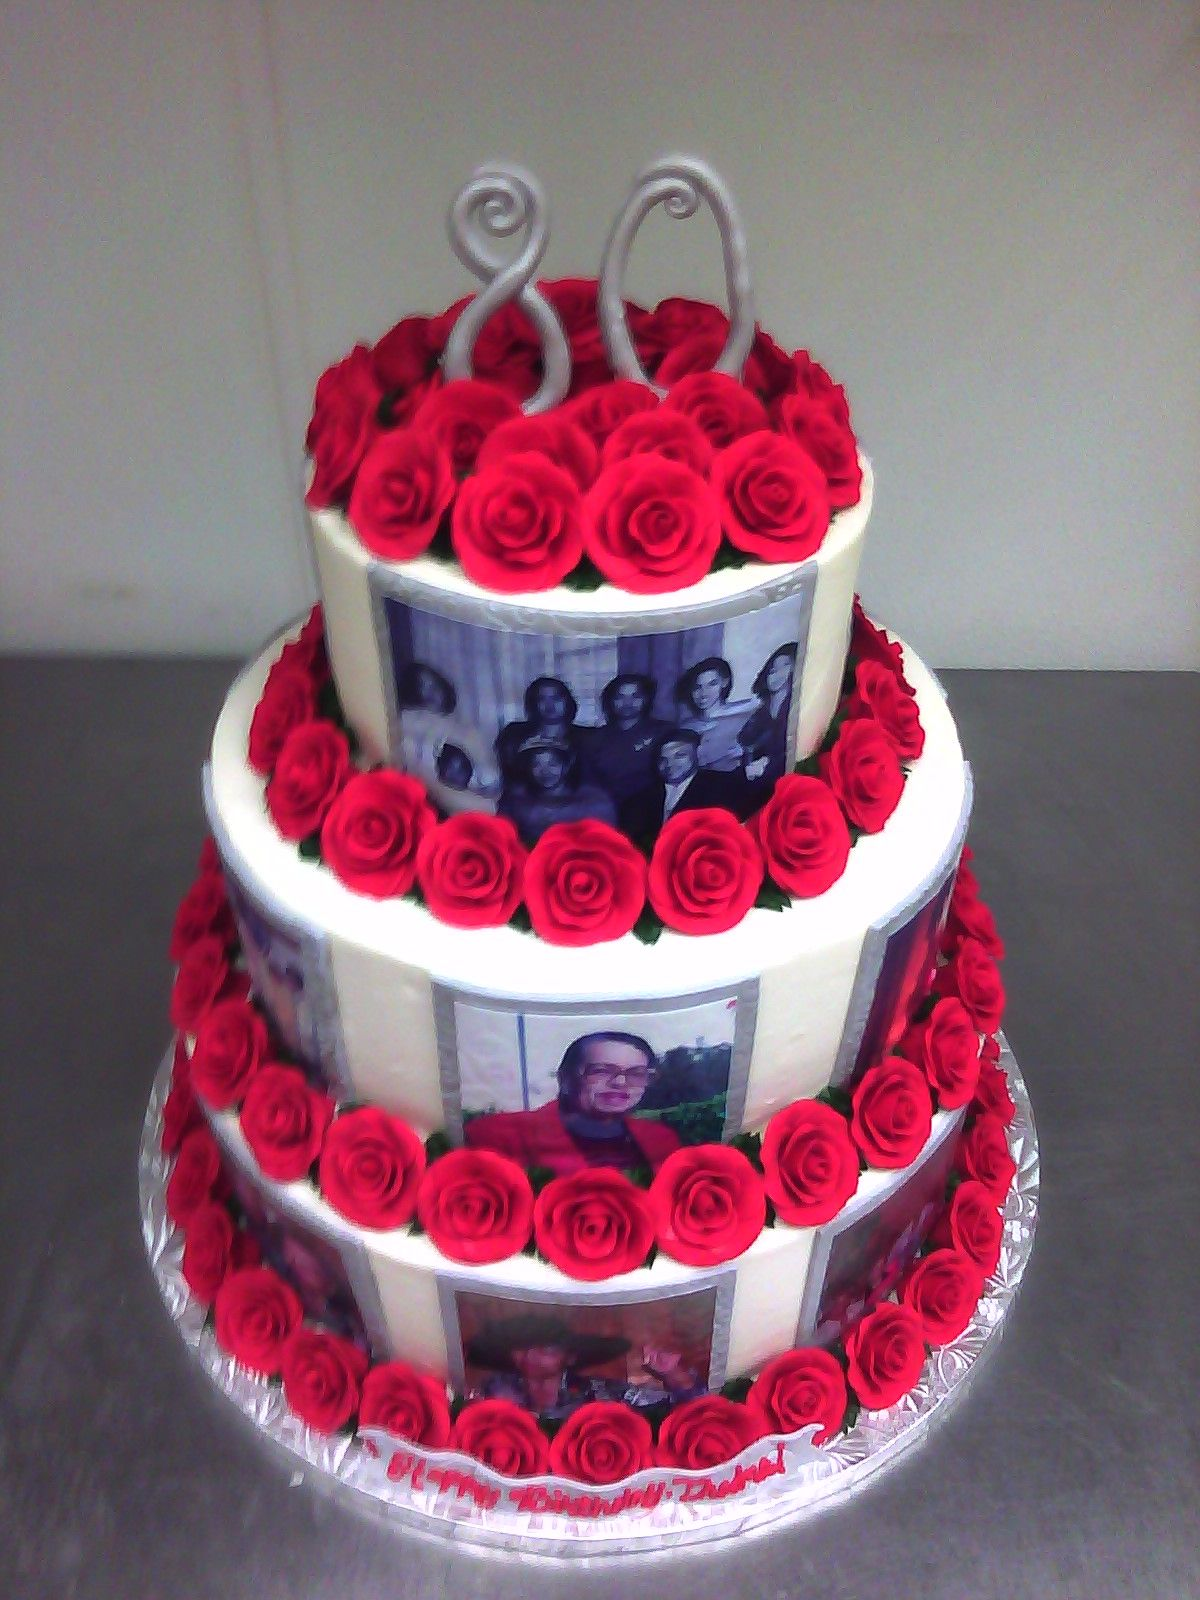 birthday cakes for women 80th Birthday Cake Designs For